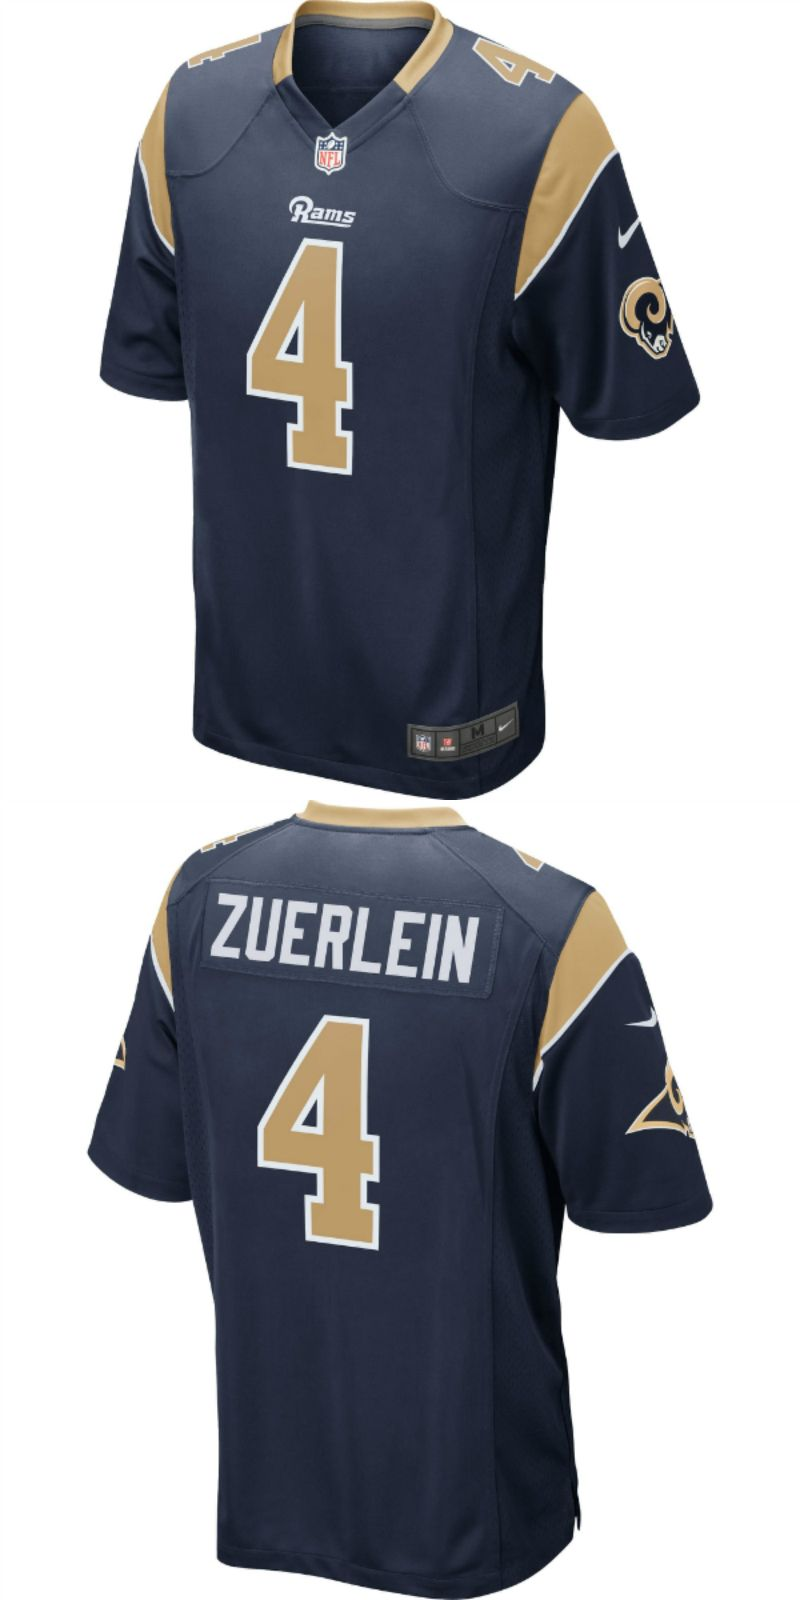 size 40 90a35 9cc8f UP TO 70% OFF. Greg Zuerlein Los Angeles Rams Nike Game ...